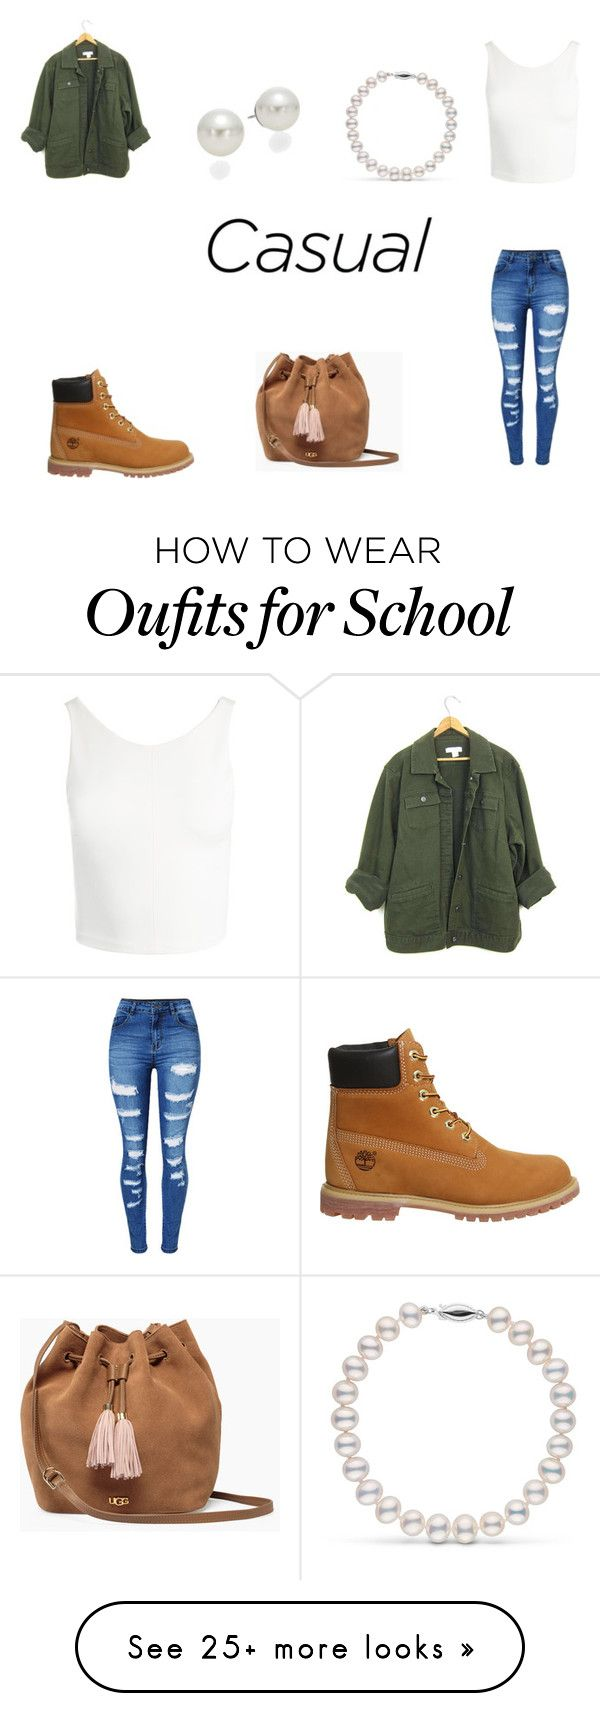 """""""Something  Iwould wear to school!"""" by queenb-676 on Polyvore featuring Sans Souci, Timberland, WithChic, UGG and AK Anne Klein"""